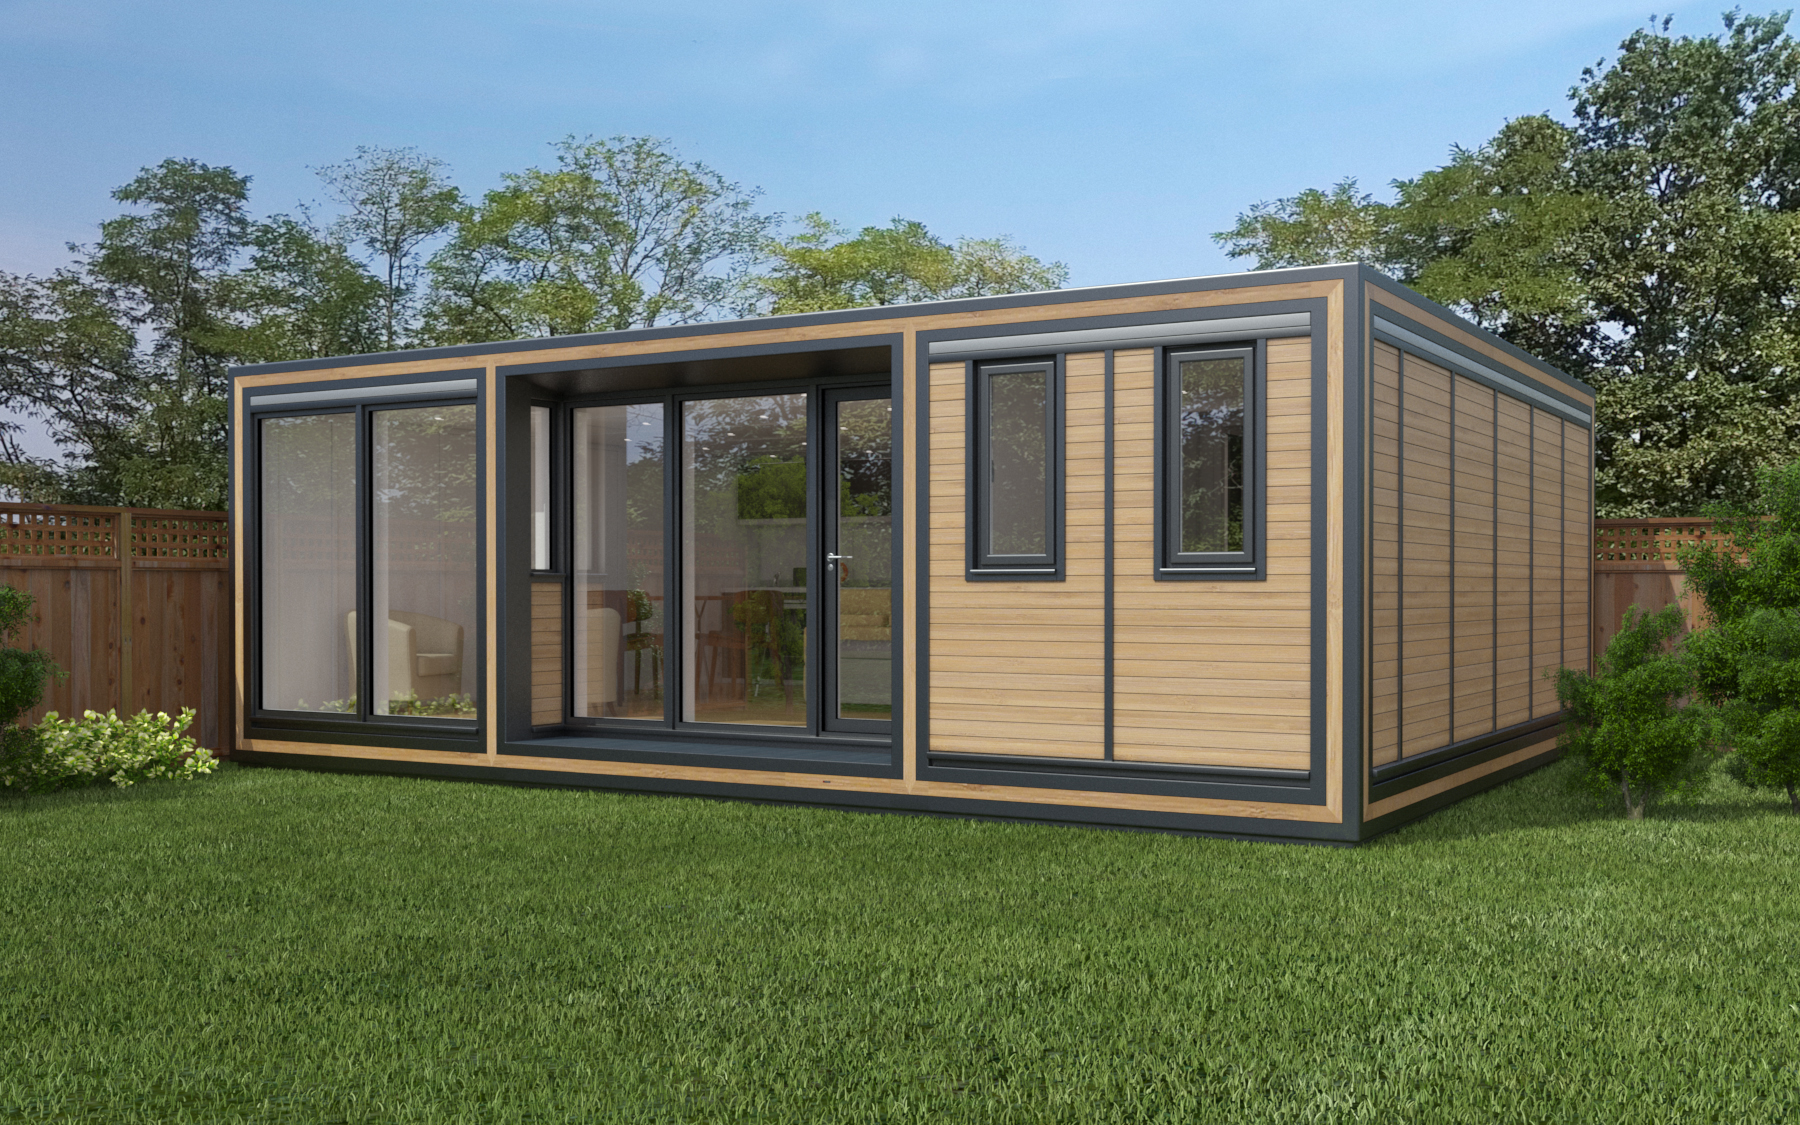 ZEDBOX 755  (7 x 5.5)  Internal Size: 7472 x 5888  External Size: 7942 x 6358  Bed Options: Single, Double or two doubles.  Kitchen Options: Micro Kitchen or Kitchen  Wet Room Options: Yes  Portico: Yes  Price:  £56,000    Optional Extras    Request Zedbox Catalogue